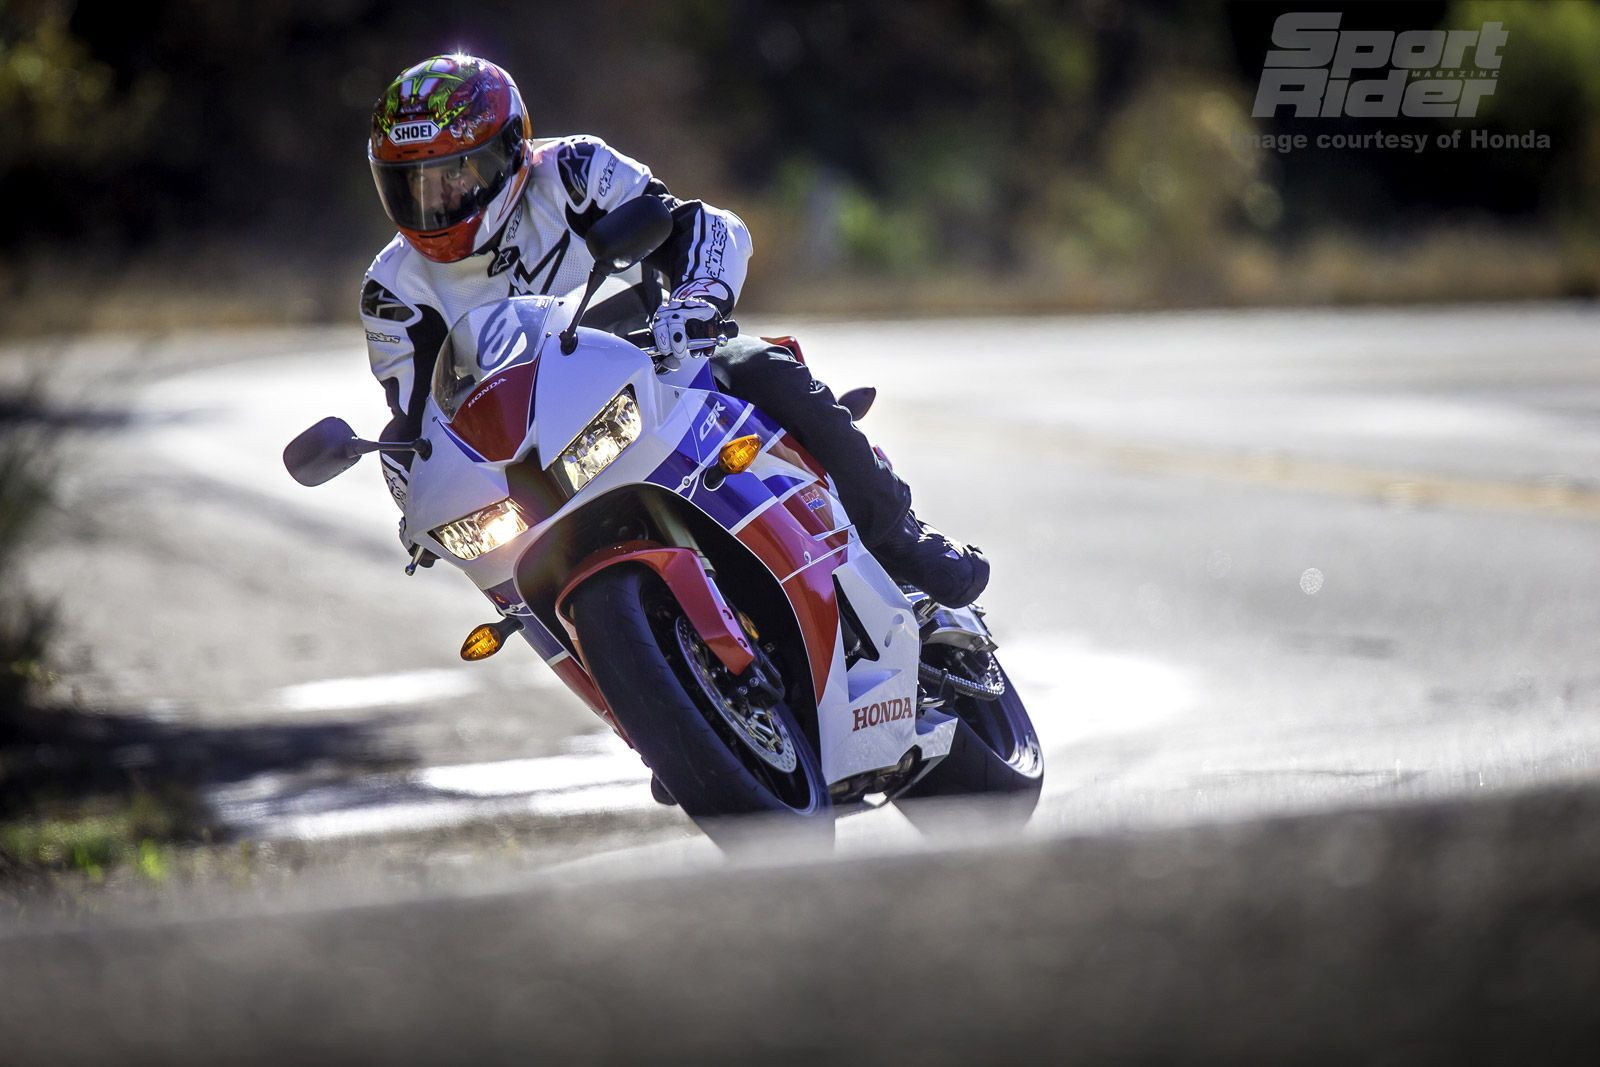 2013 honda cbr600rr wallpaper | sport rider | cars & motorcycles